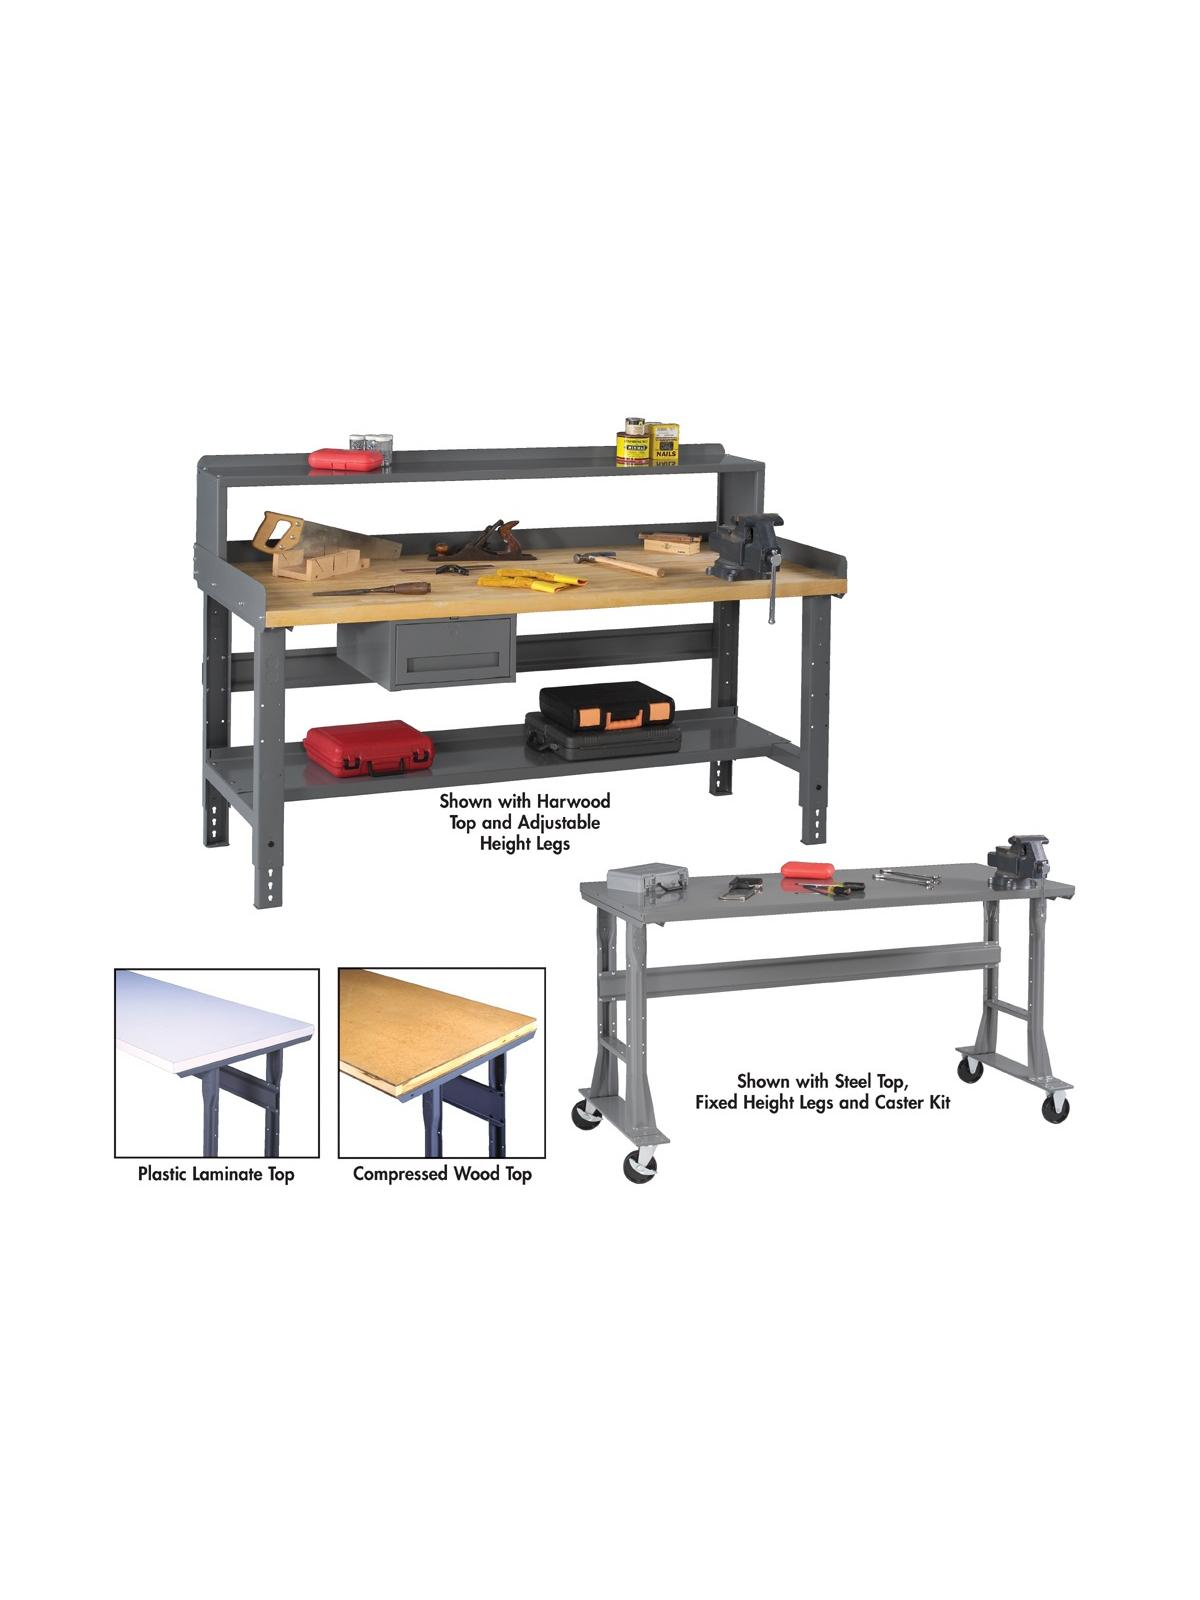 Heavy Duty Industrial Workbenches At Nationwide Industrial Supply Llc